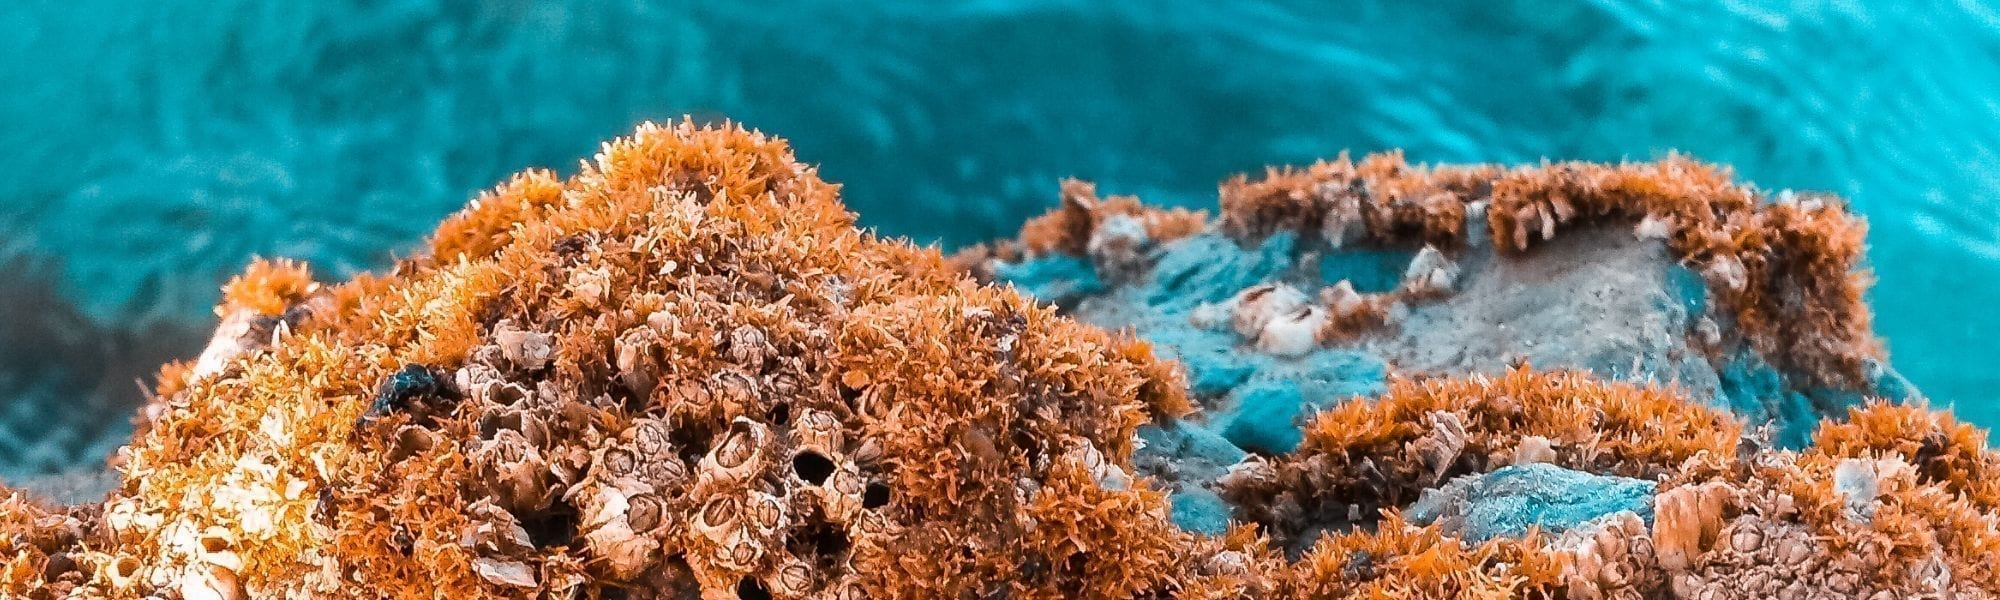 Coral reef with ocean water in background